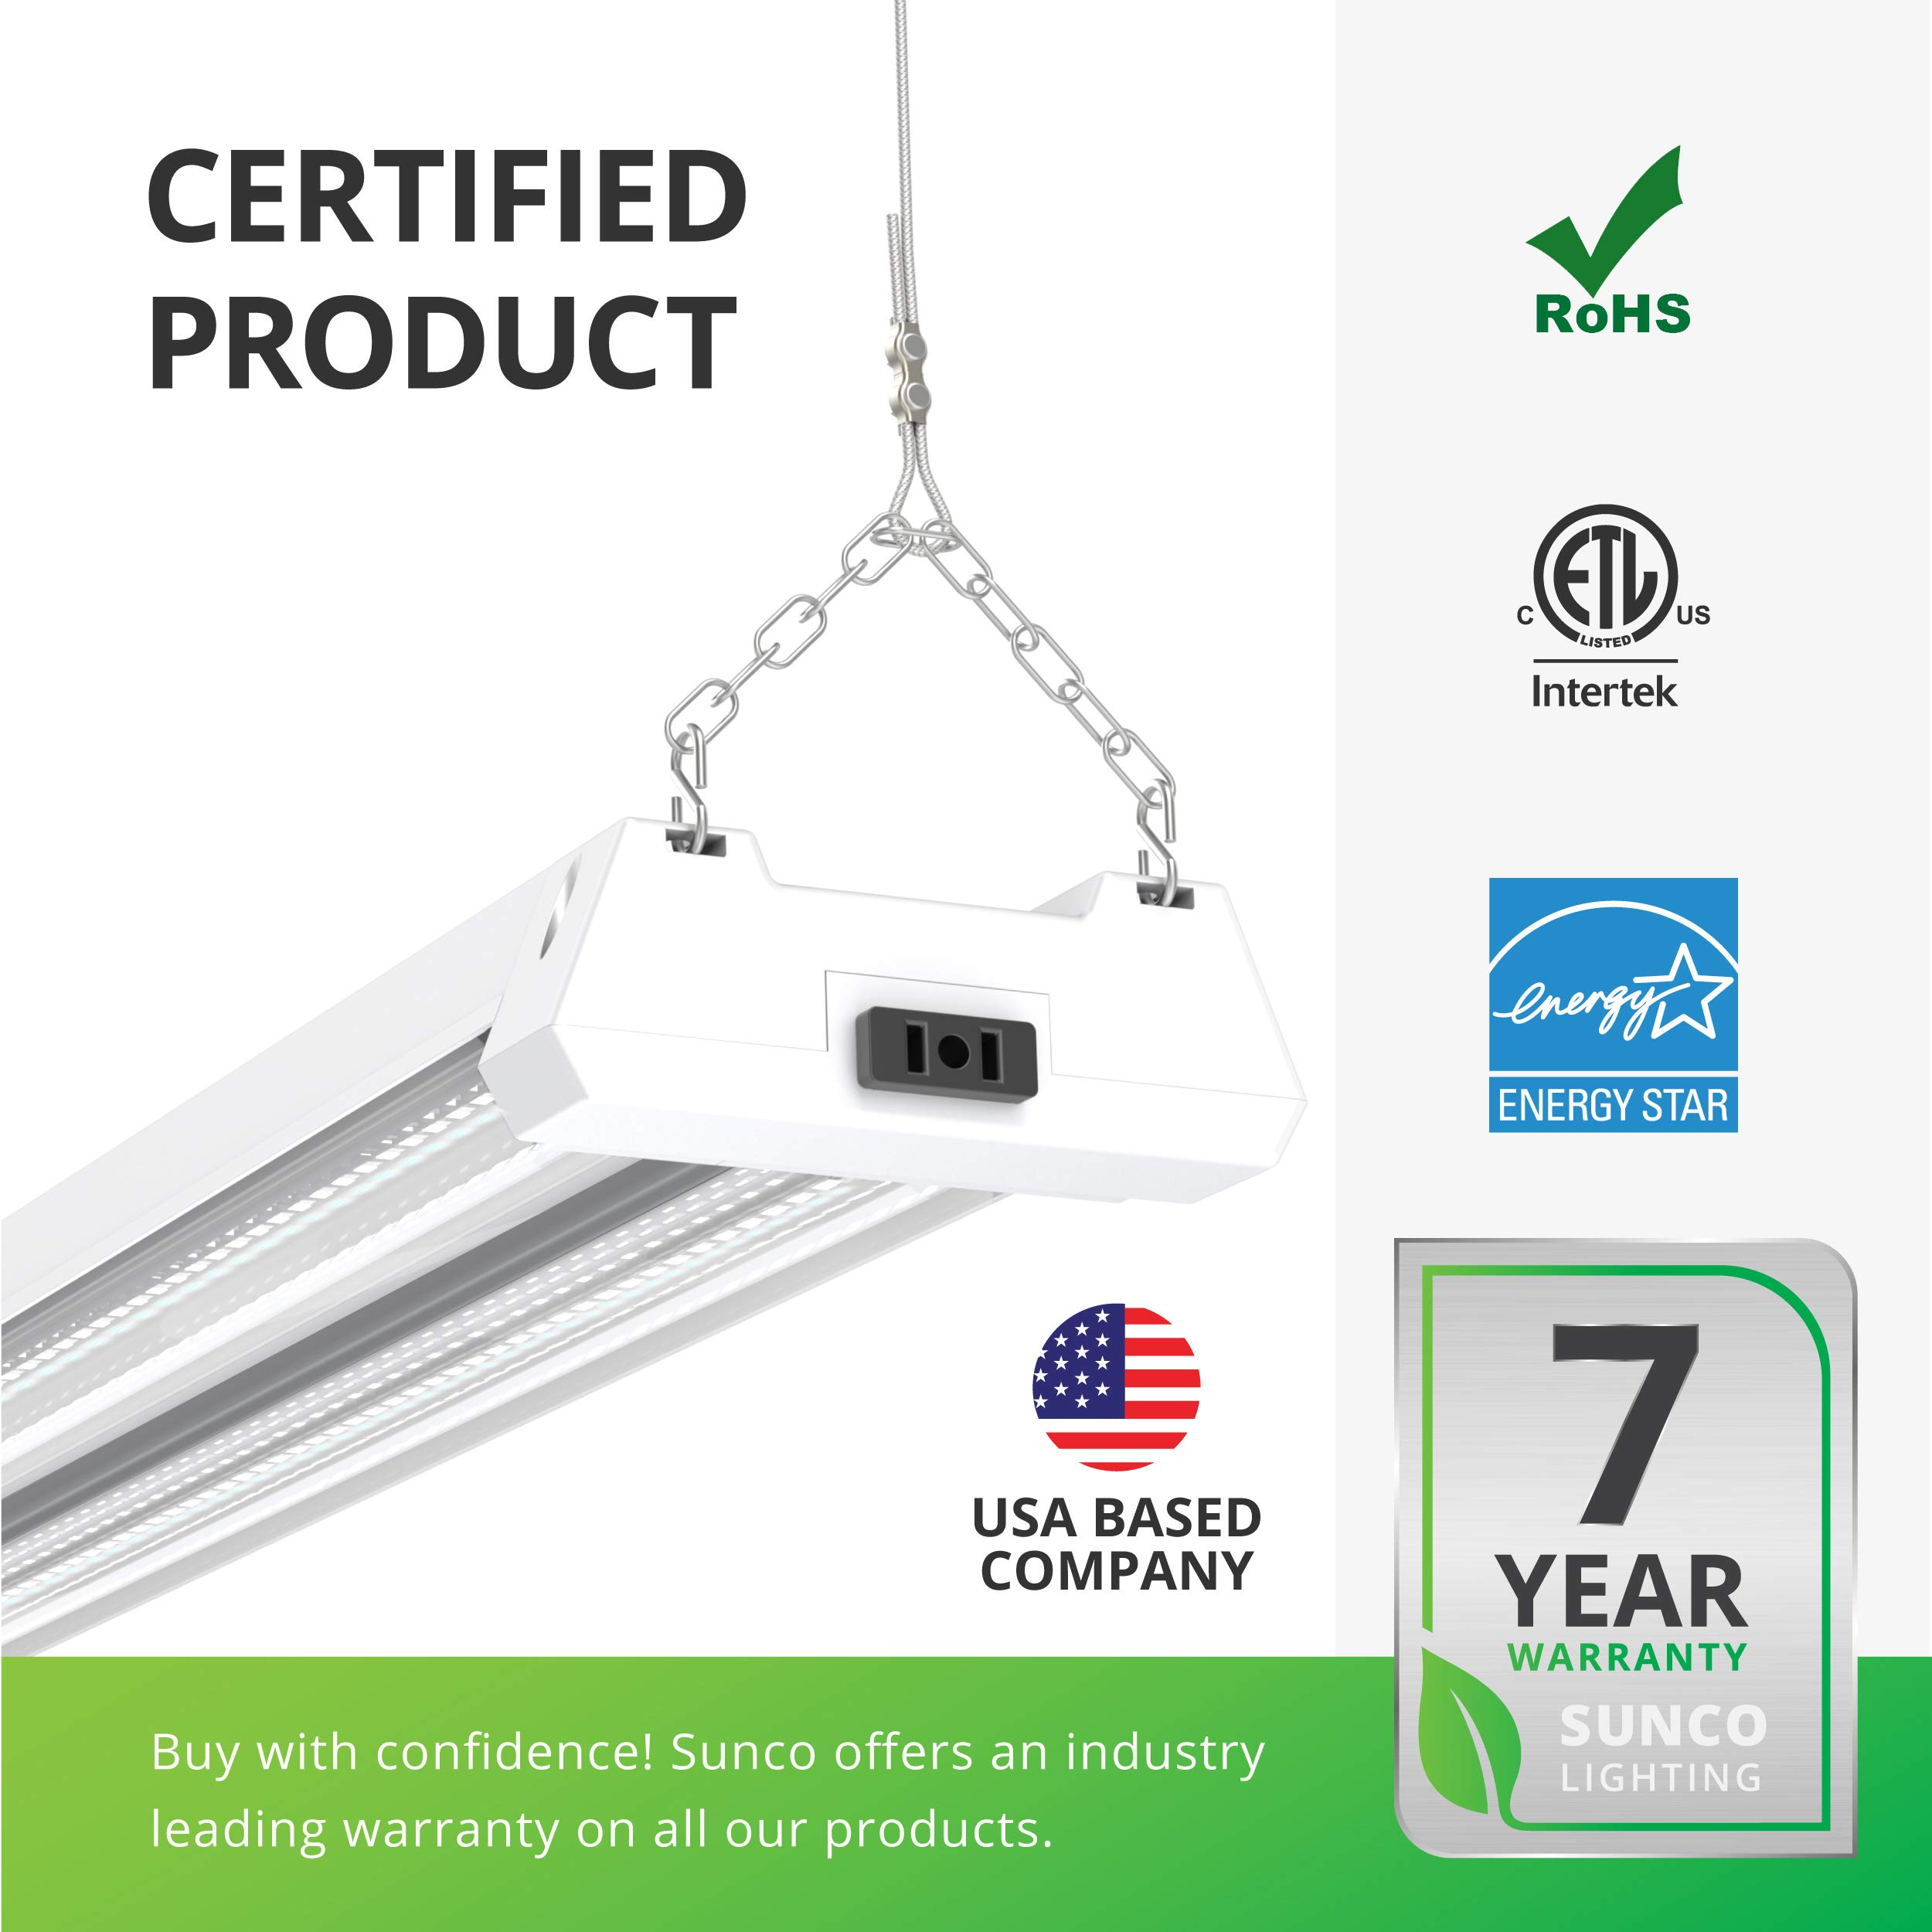 Sunco Lighting 12 Pack LED Utility Shop Light, 4 FT, Linkable Integrated Fixture, 40W=260W, 5000K Daylight, 4500 LM, Clear Lens, Surface/Suspension Mount, Pull Chain, Garage - ETL, Energy Star by Sunco Lighting (Image #8)